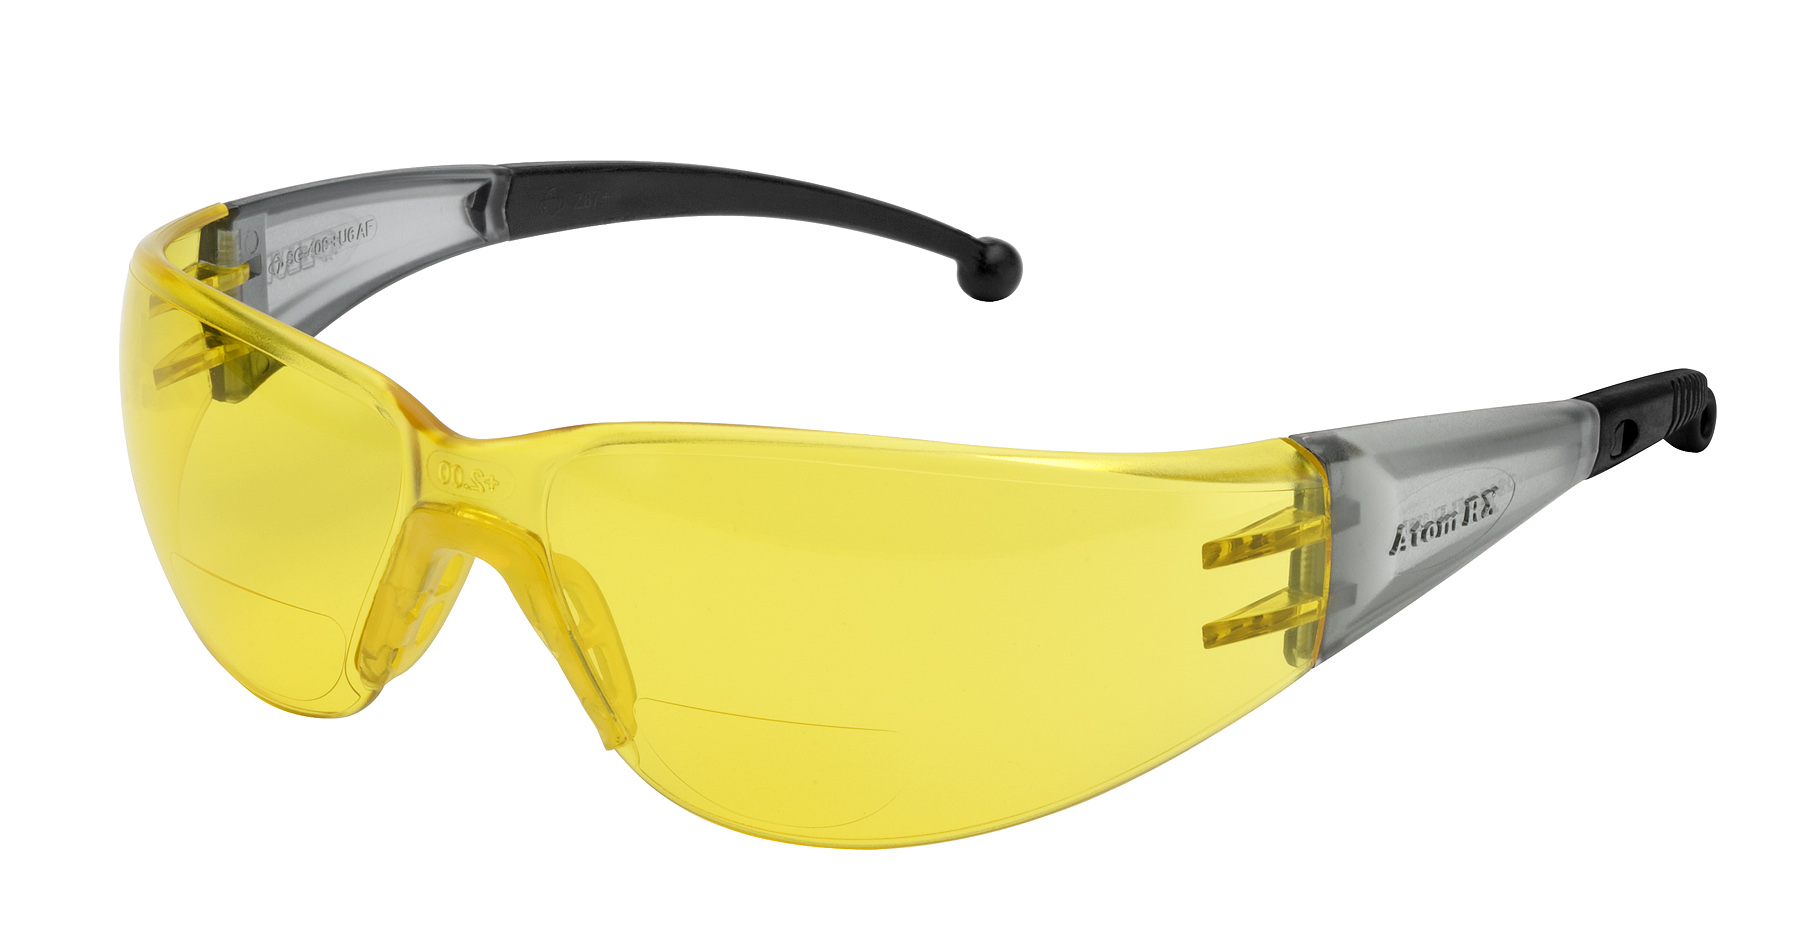 6ab790befcf R-Safe Specialty Elvex RX Safety Glasses